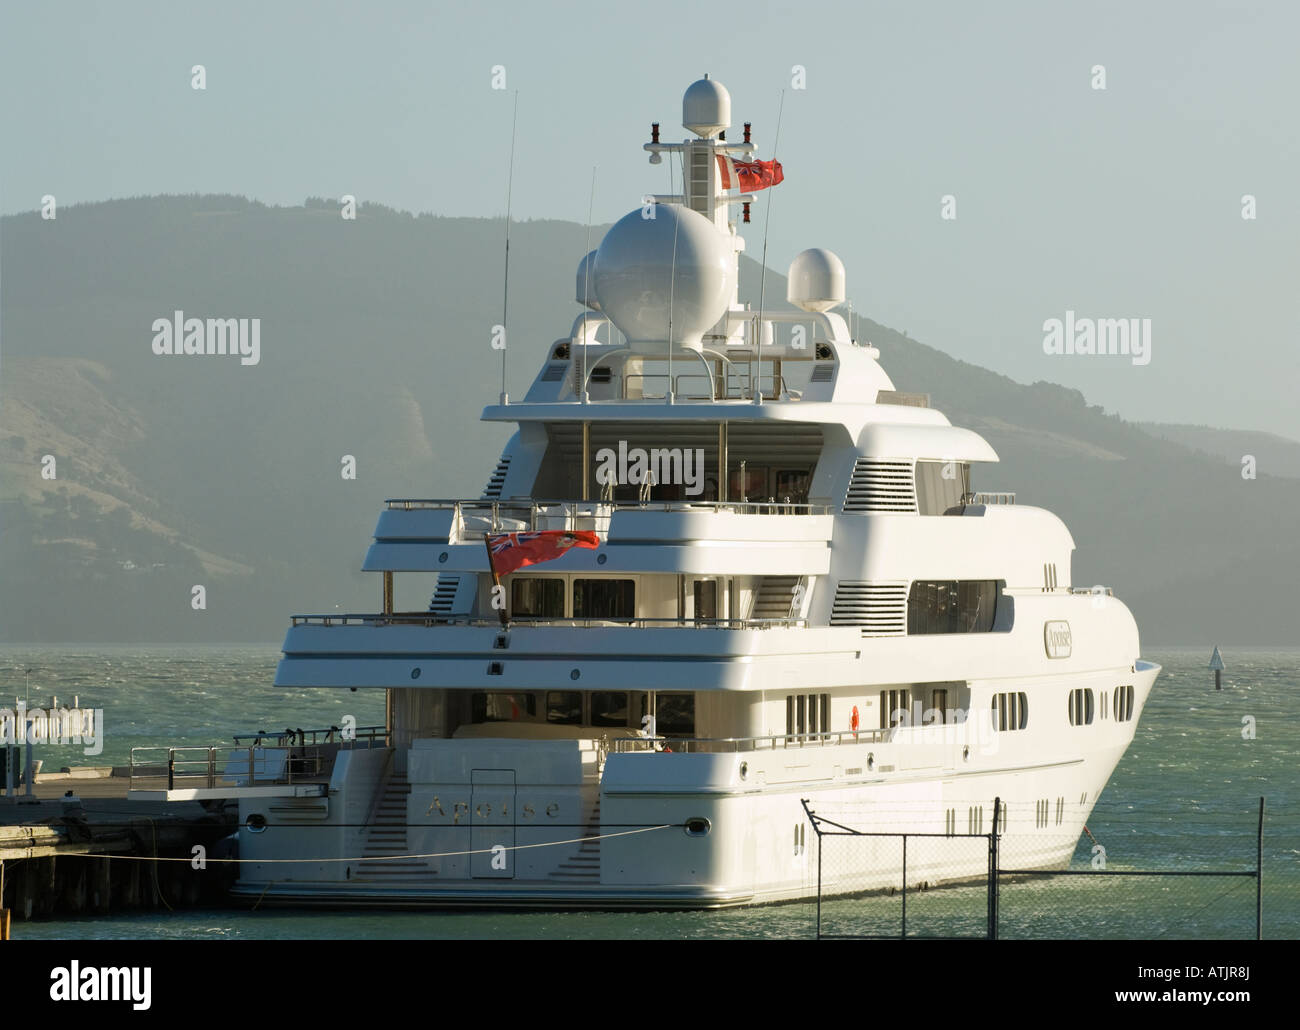 The luxury yacht Apoise  owned by Canadian David Ritchie - Stock Image